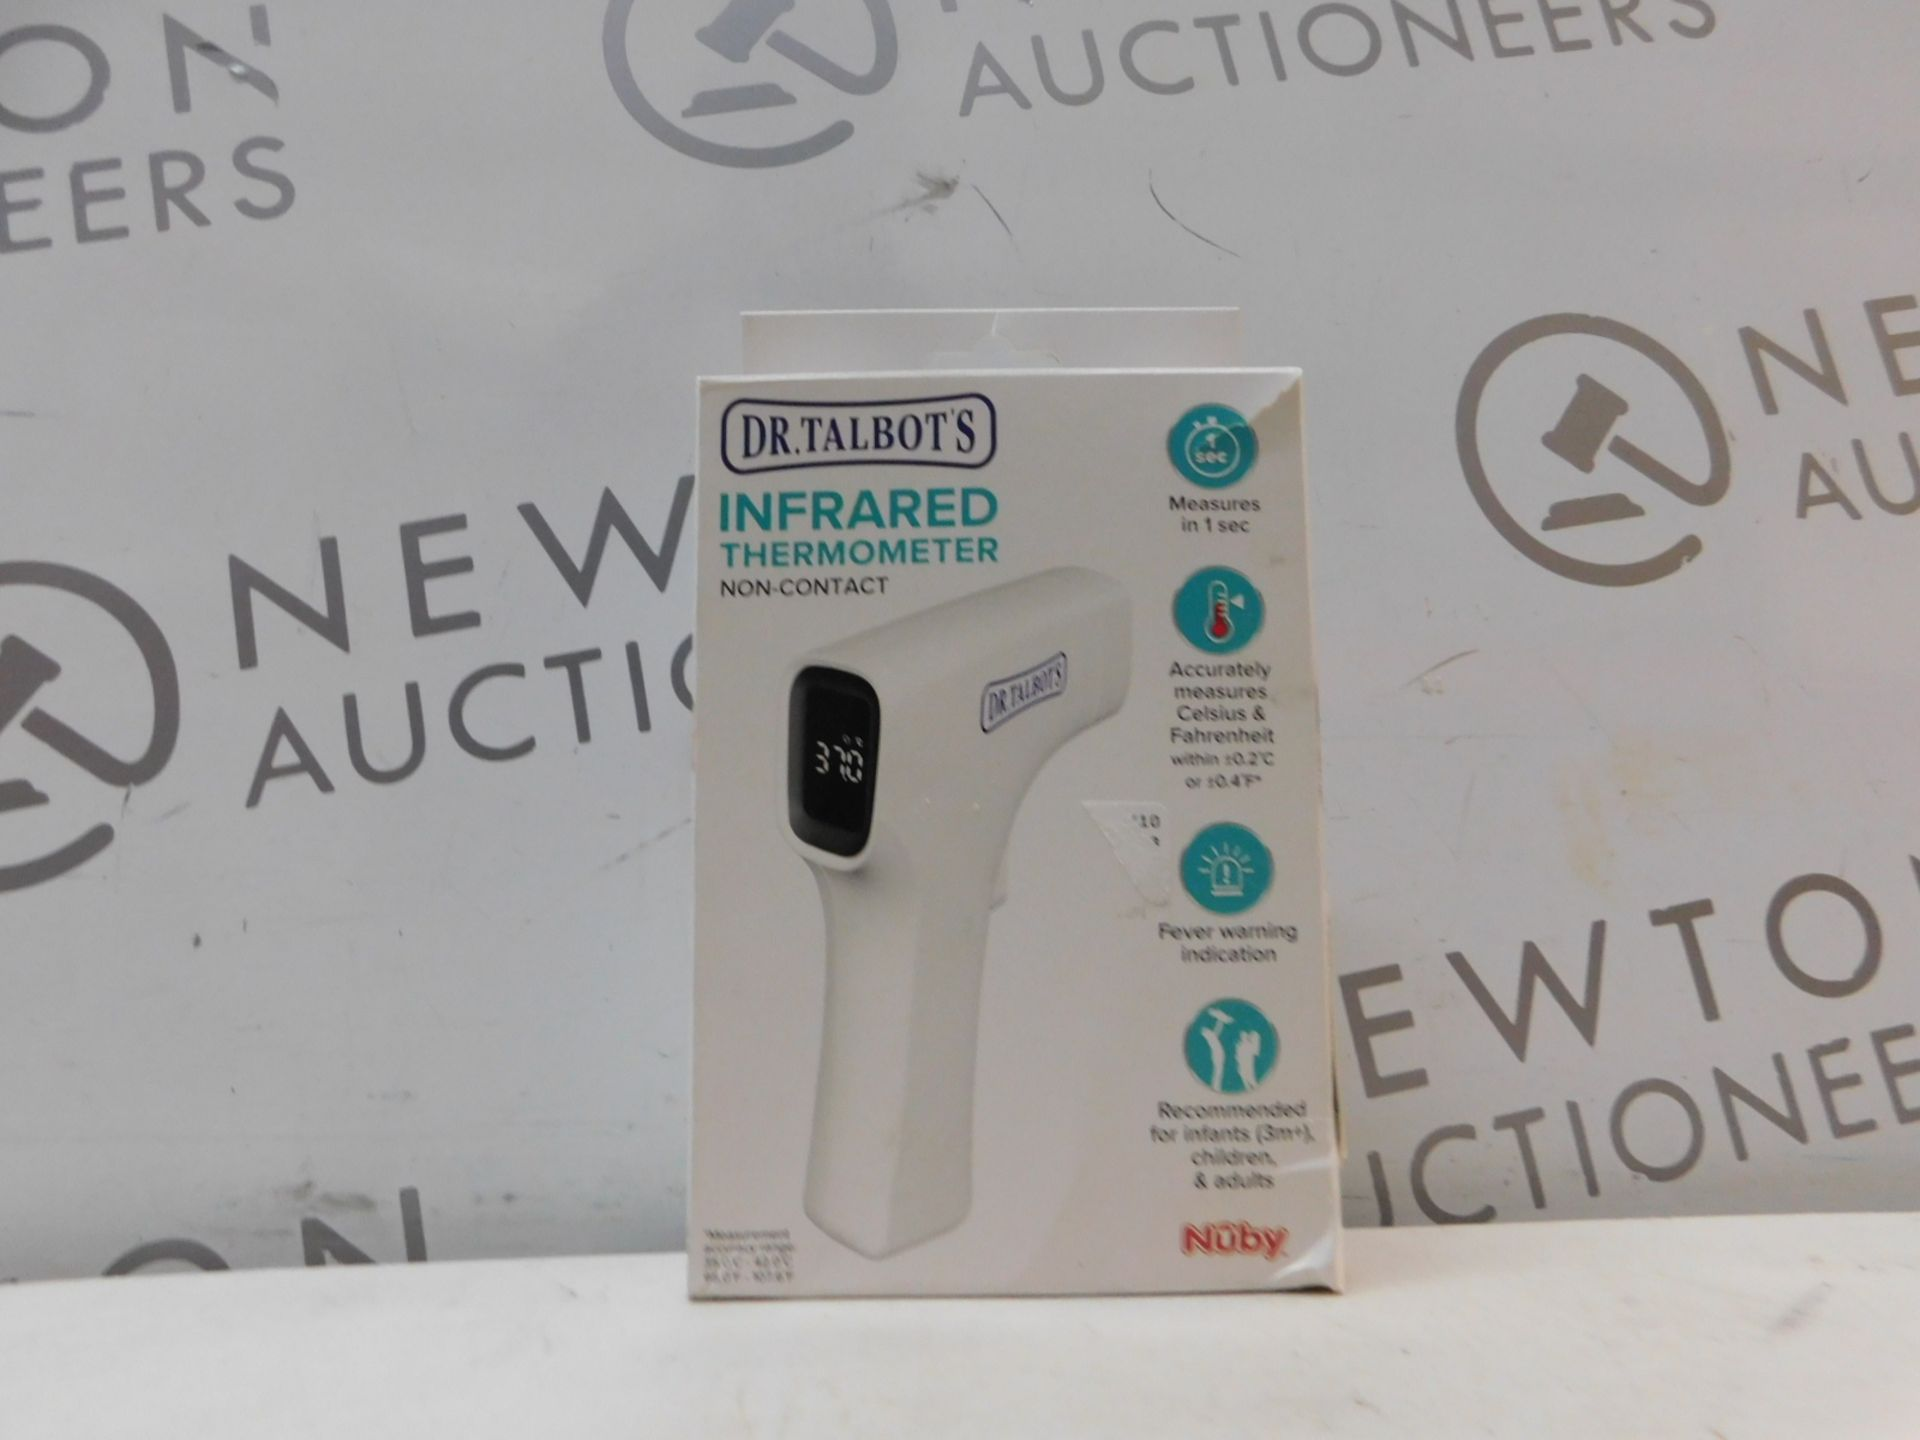 Lot 286 - 1 BOXED DR TALBOTS INFRARED THERMOMETER NON-CONTACT RRP £79.99